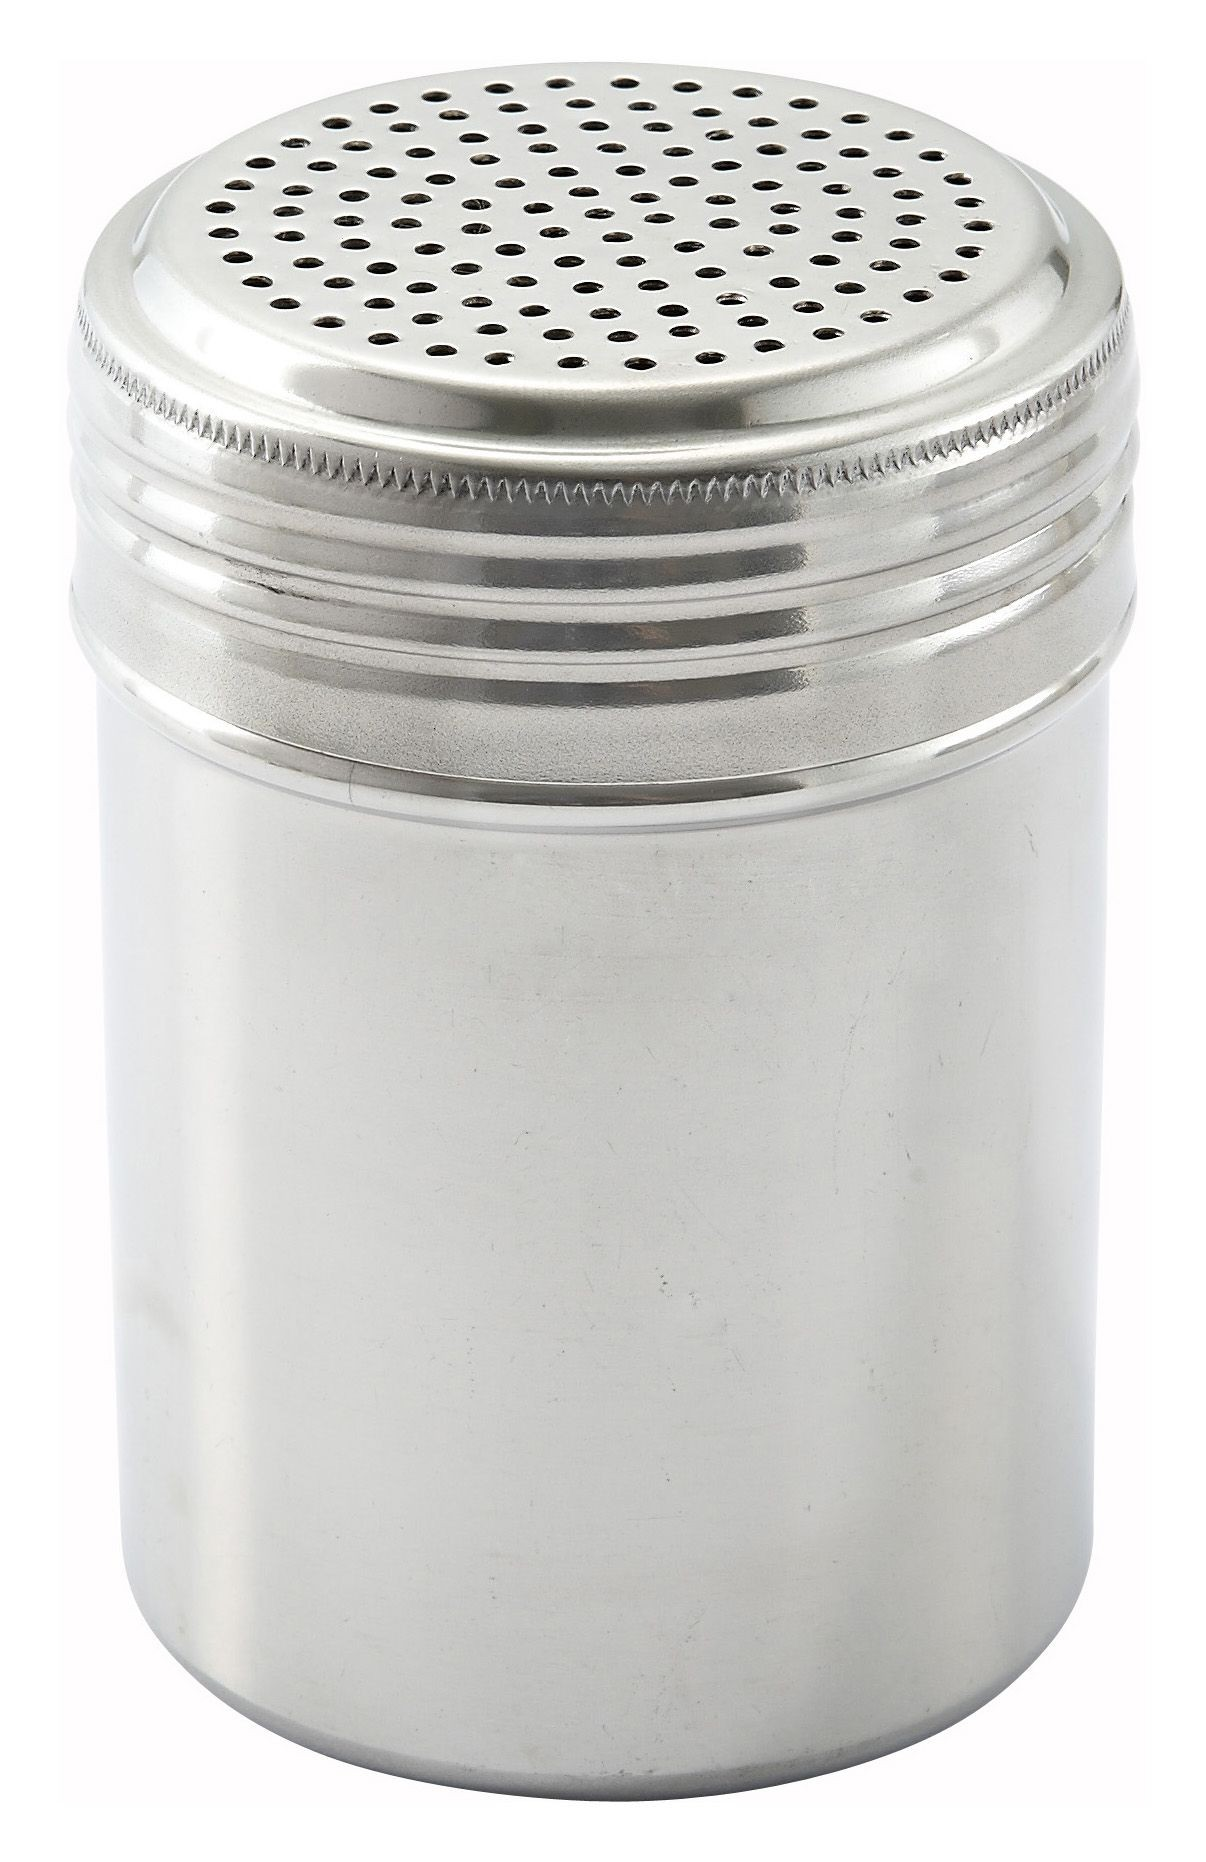 Winco drg-10h Stainless Steel 10 oz. Dredge without Handle